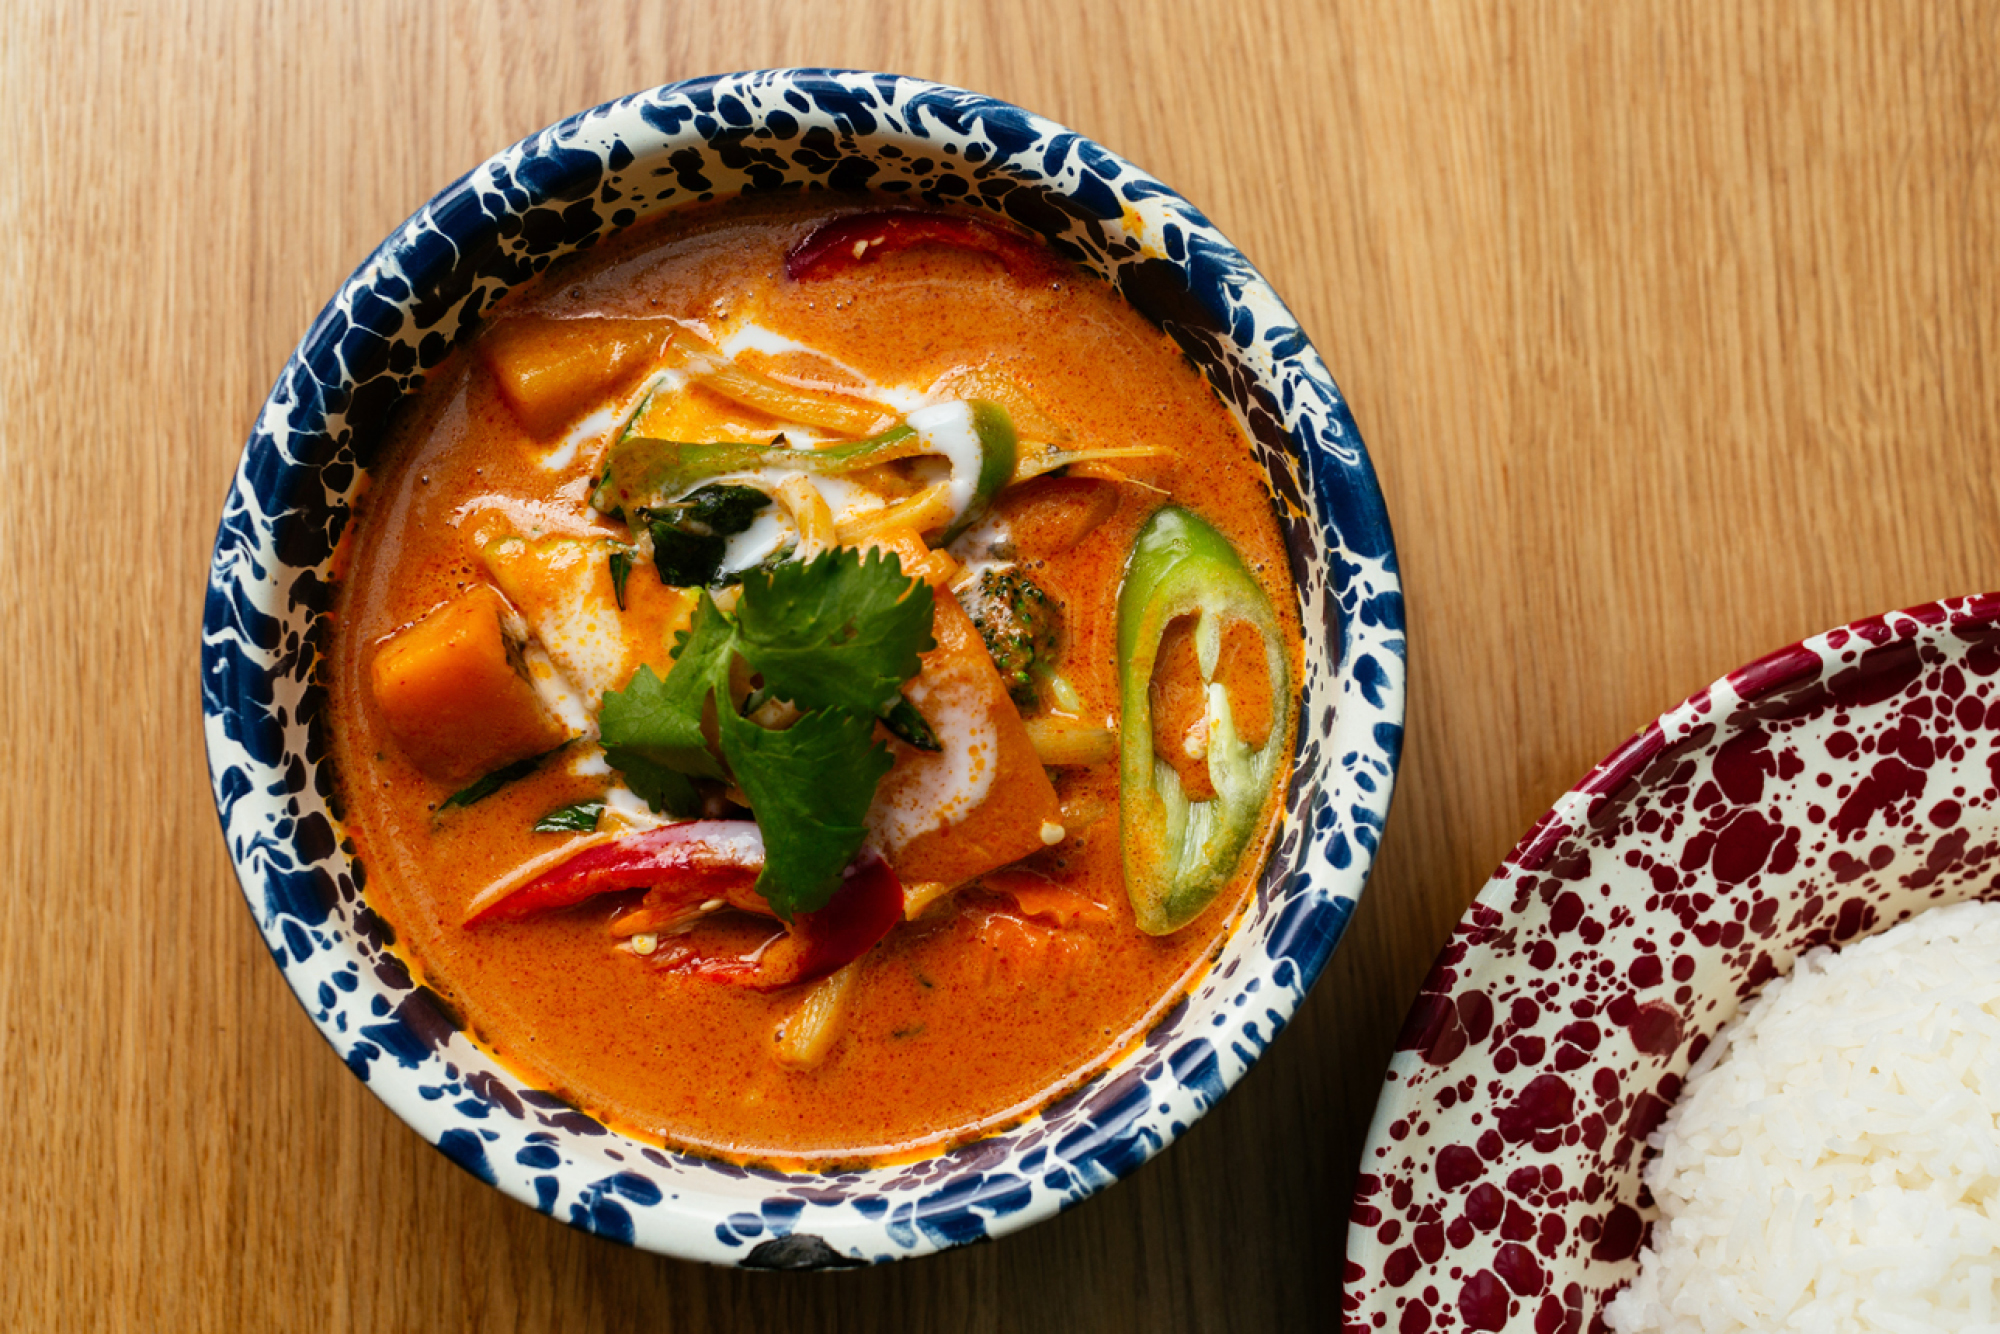 Rosa's Thai Cafe butternut red curry